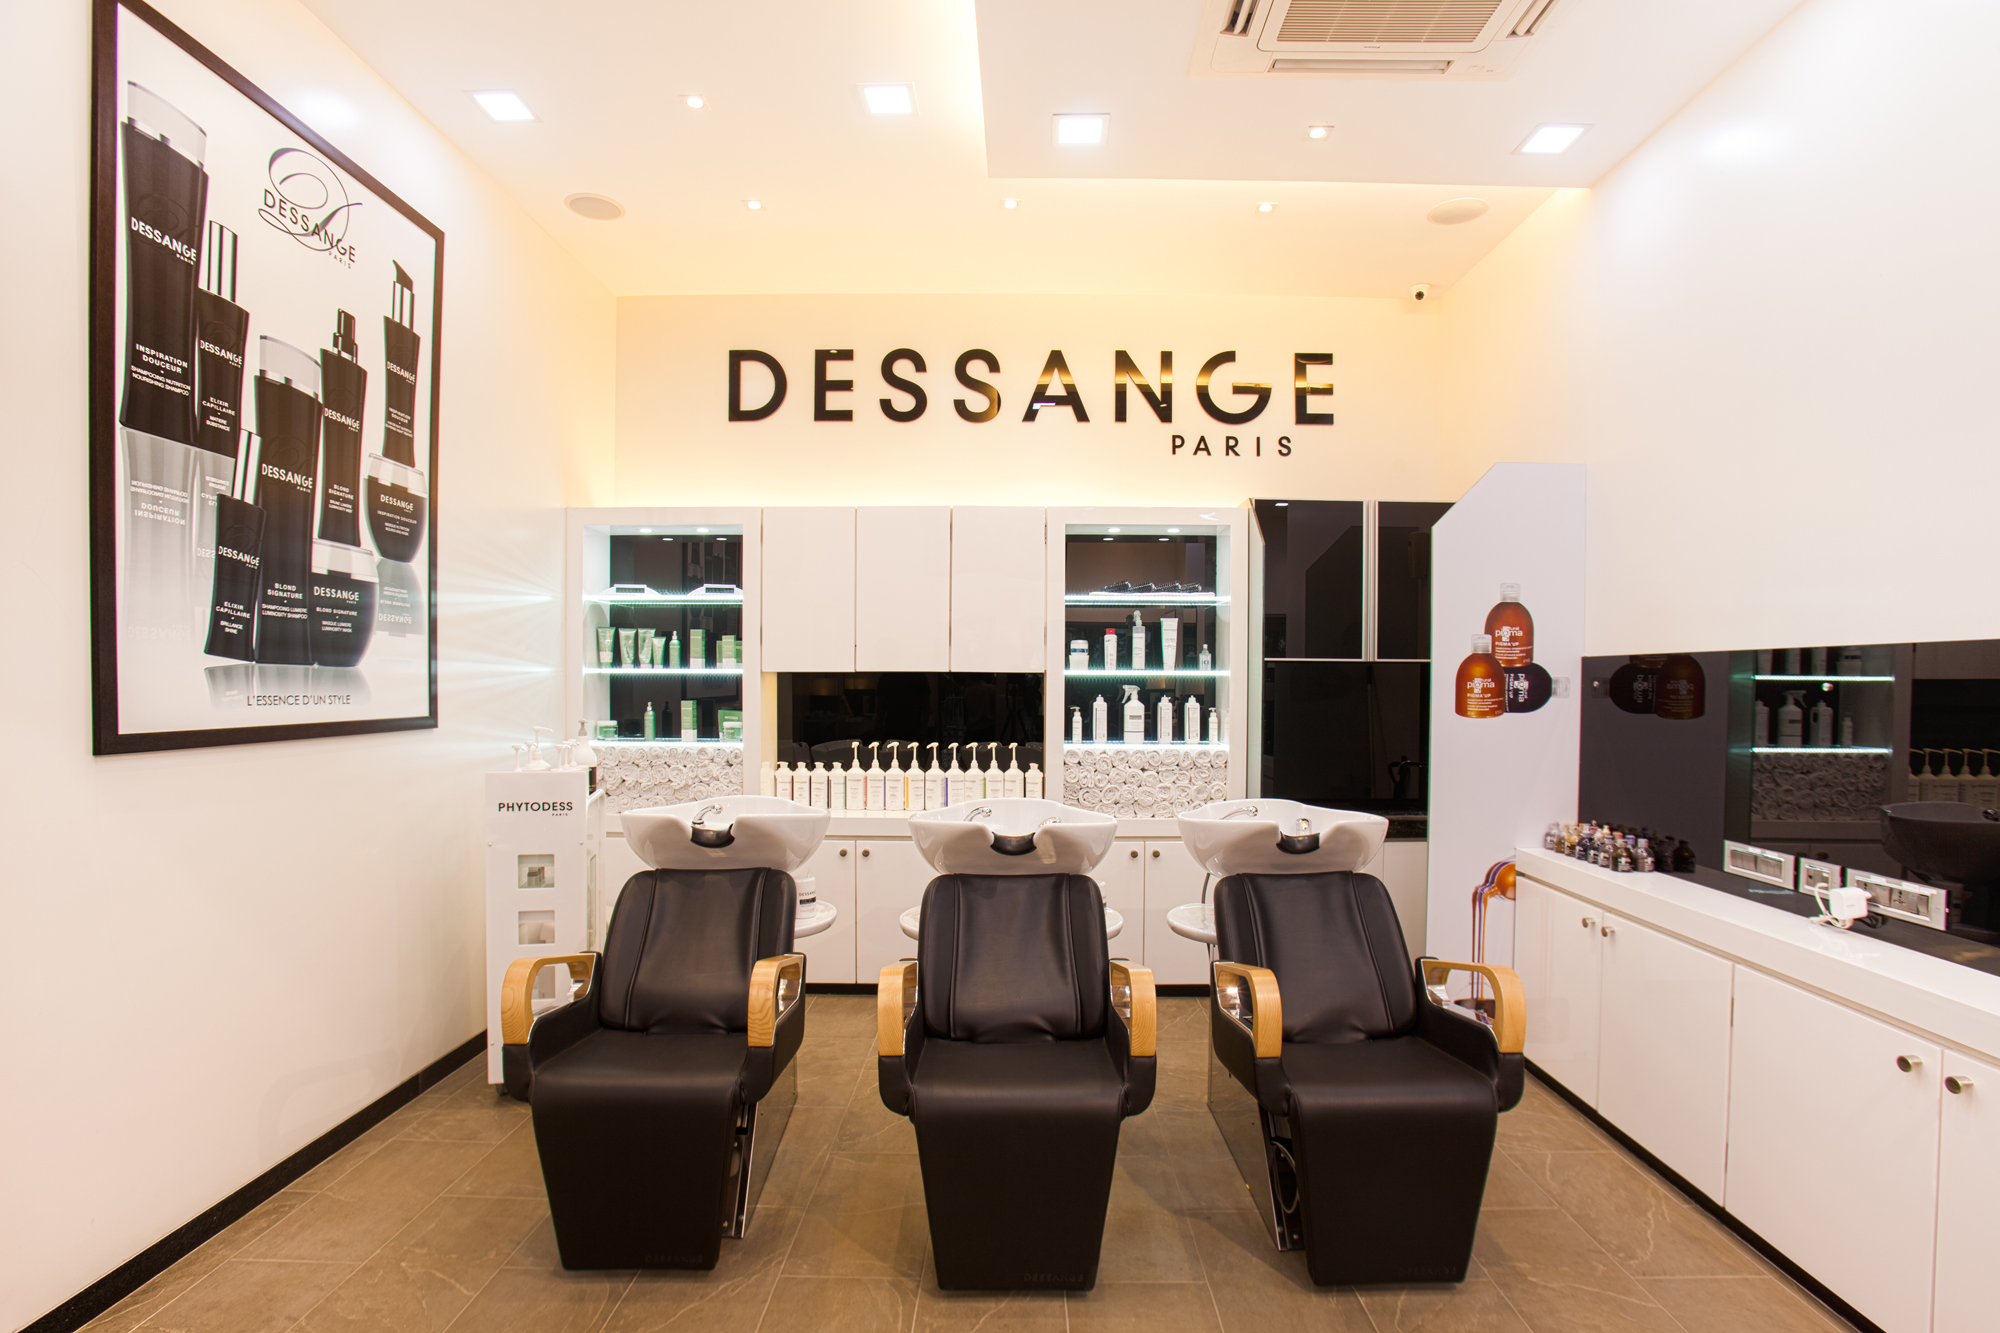 Beauty gets a new address dessange paris comes to mumbai for Hotel design paris spa